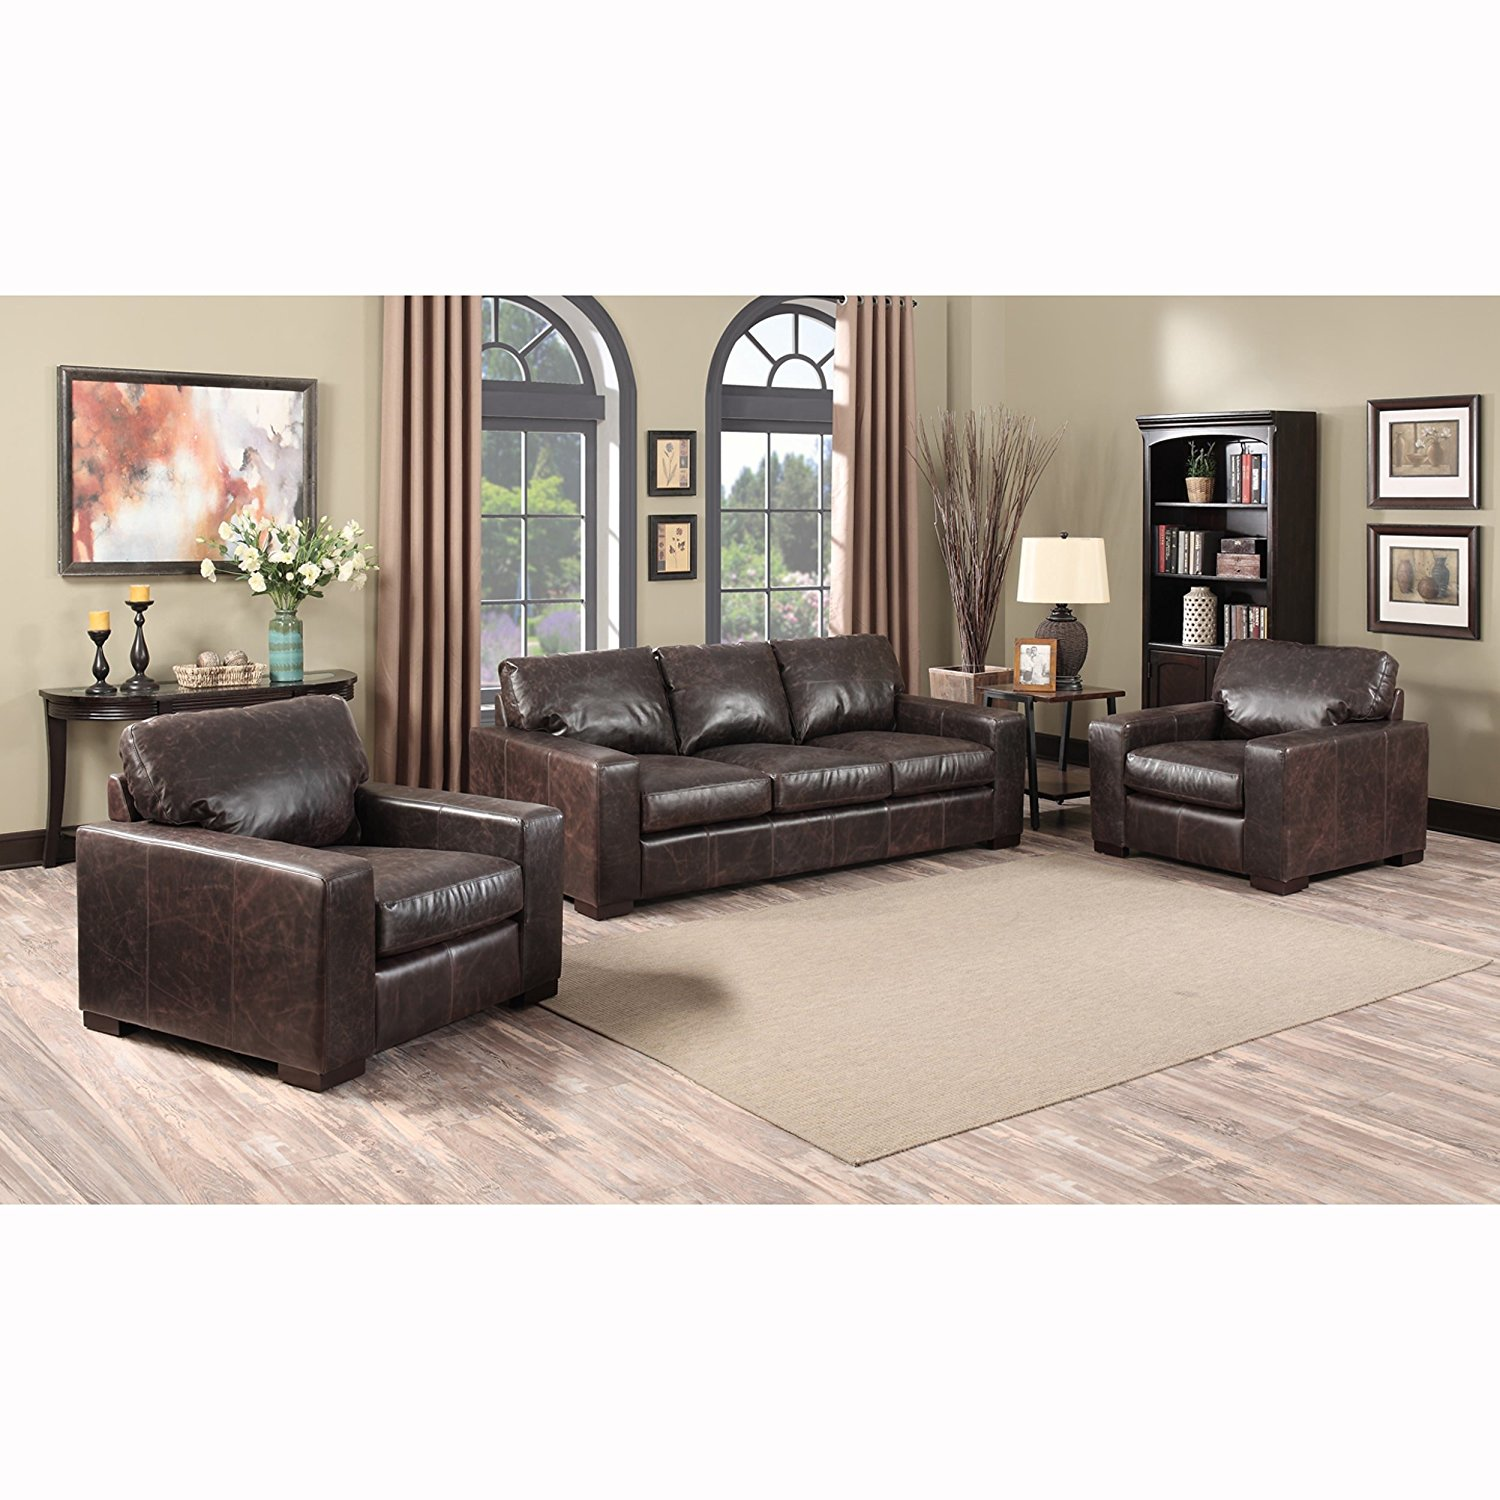 Sofaweb.com Inc. Maxweld Premium Distressed Brown Top Grain Leather Sofa and Two Chairs